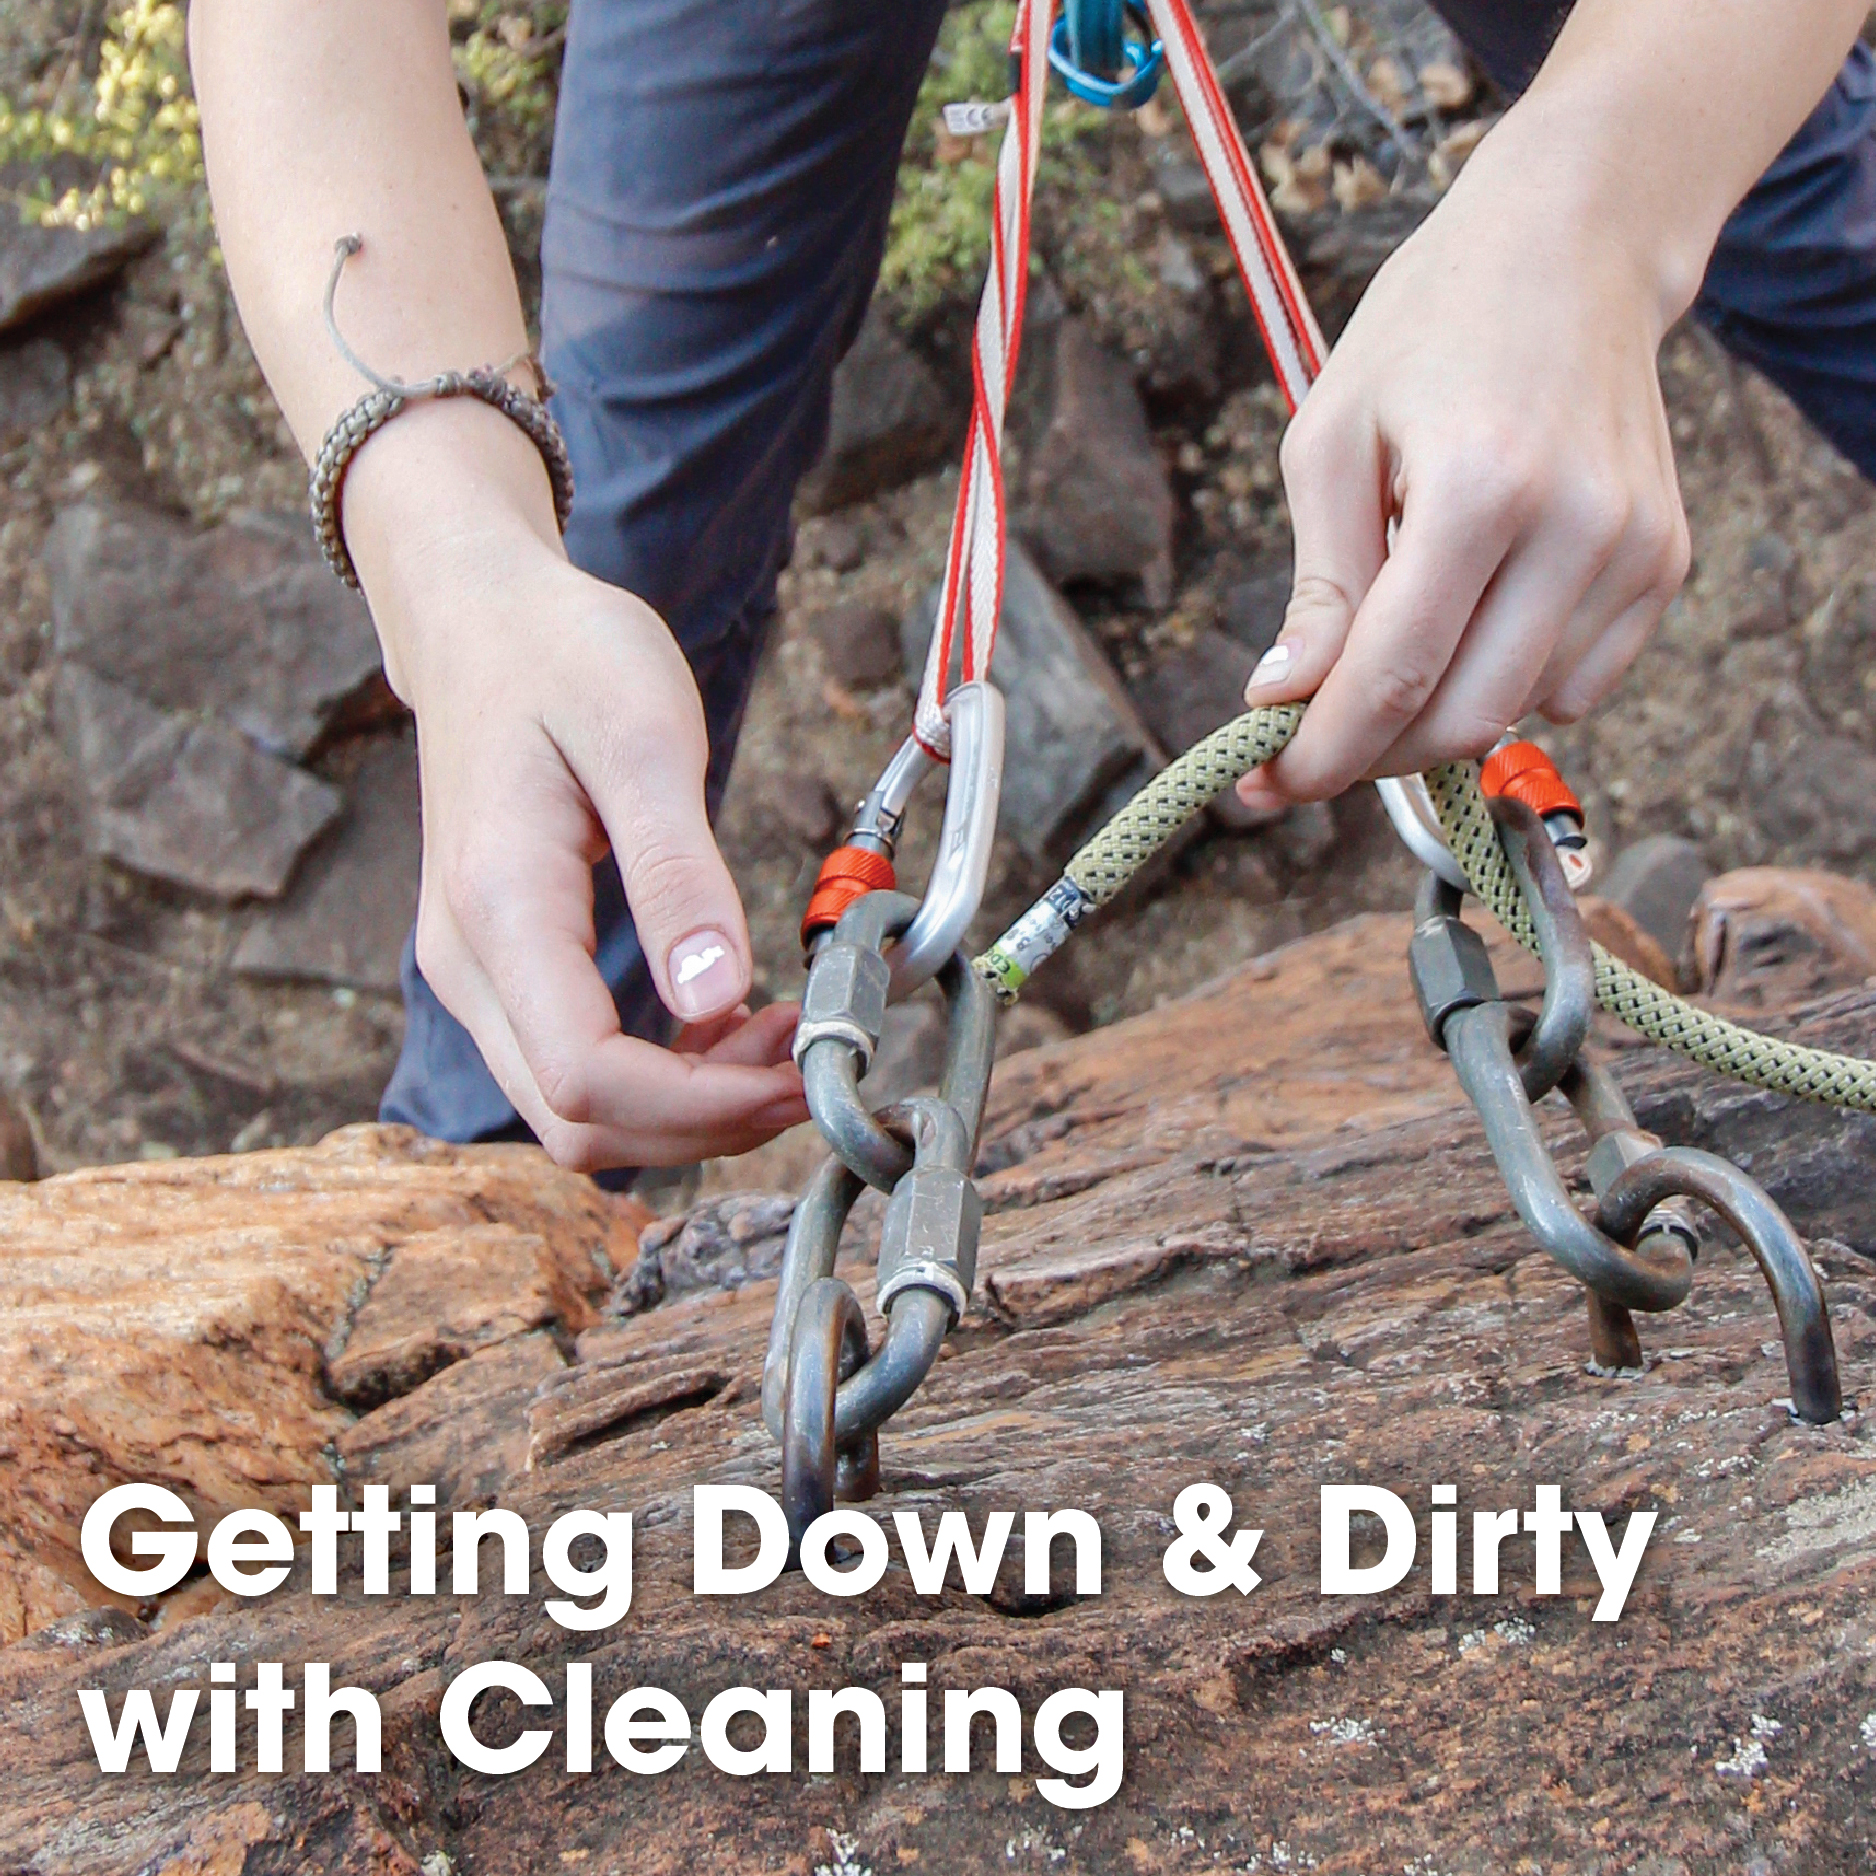 Getting Down & Dirty with Cleaning